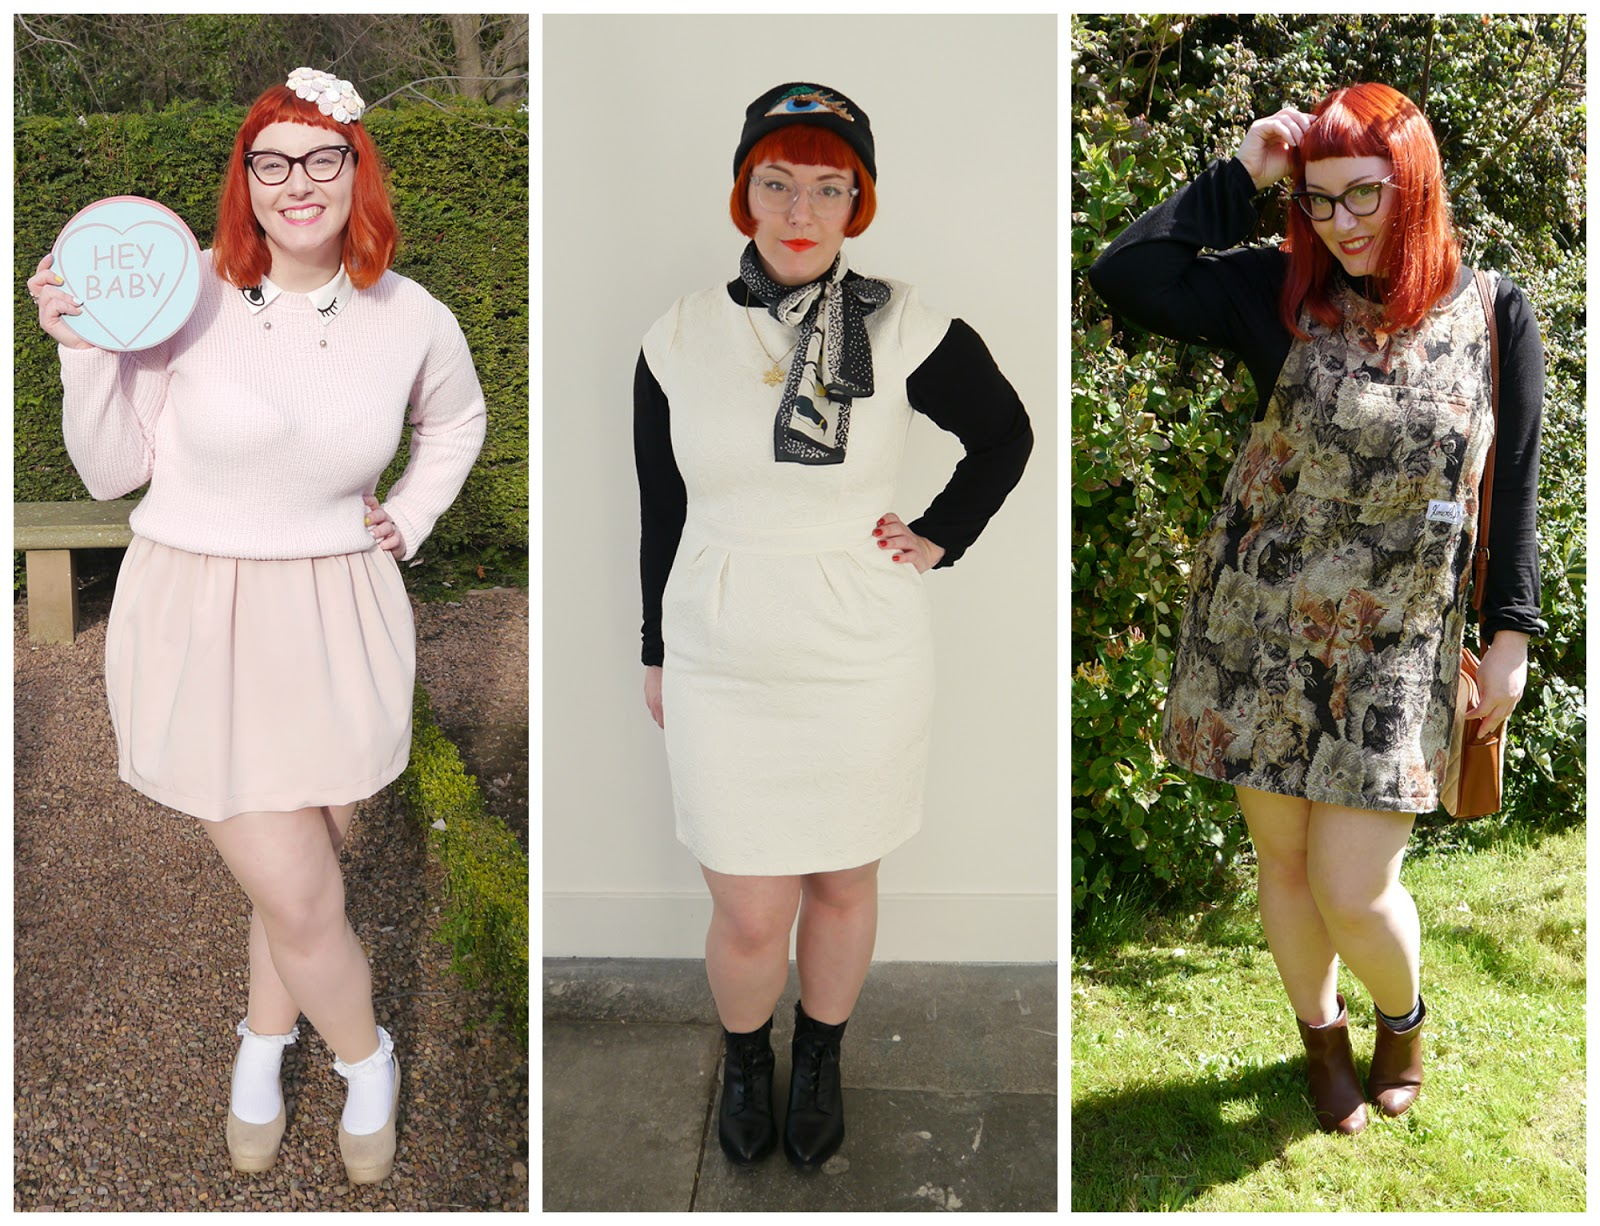 clashing prints, Scottish bloggers, 2015 round up, outfits of 2015, blogger style 2015, red head, ginger, vintage style glasses, galentines outfit, lovehearts, pink outfit, snowman style outfit, fun winter dressing, Karen Mabon scarf, Kerrie Aldo cat dress, cat pinafore, autumn dressing